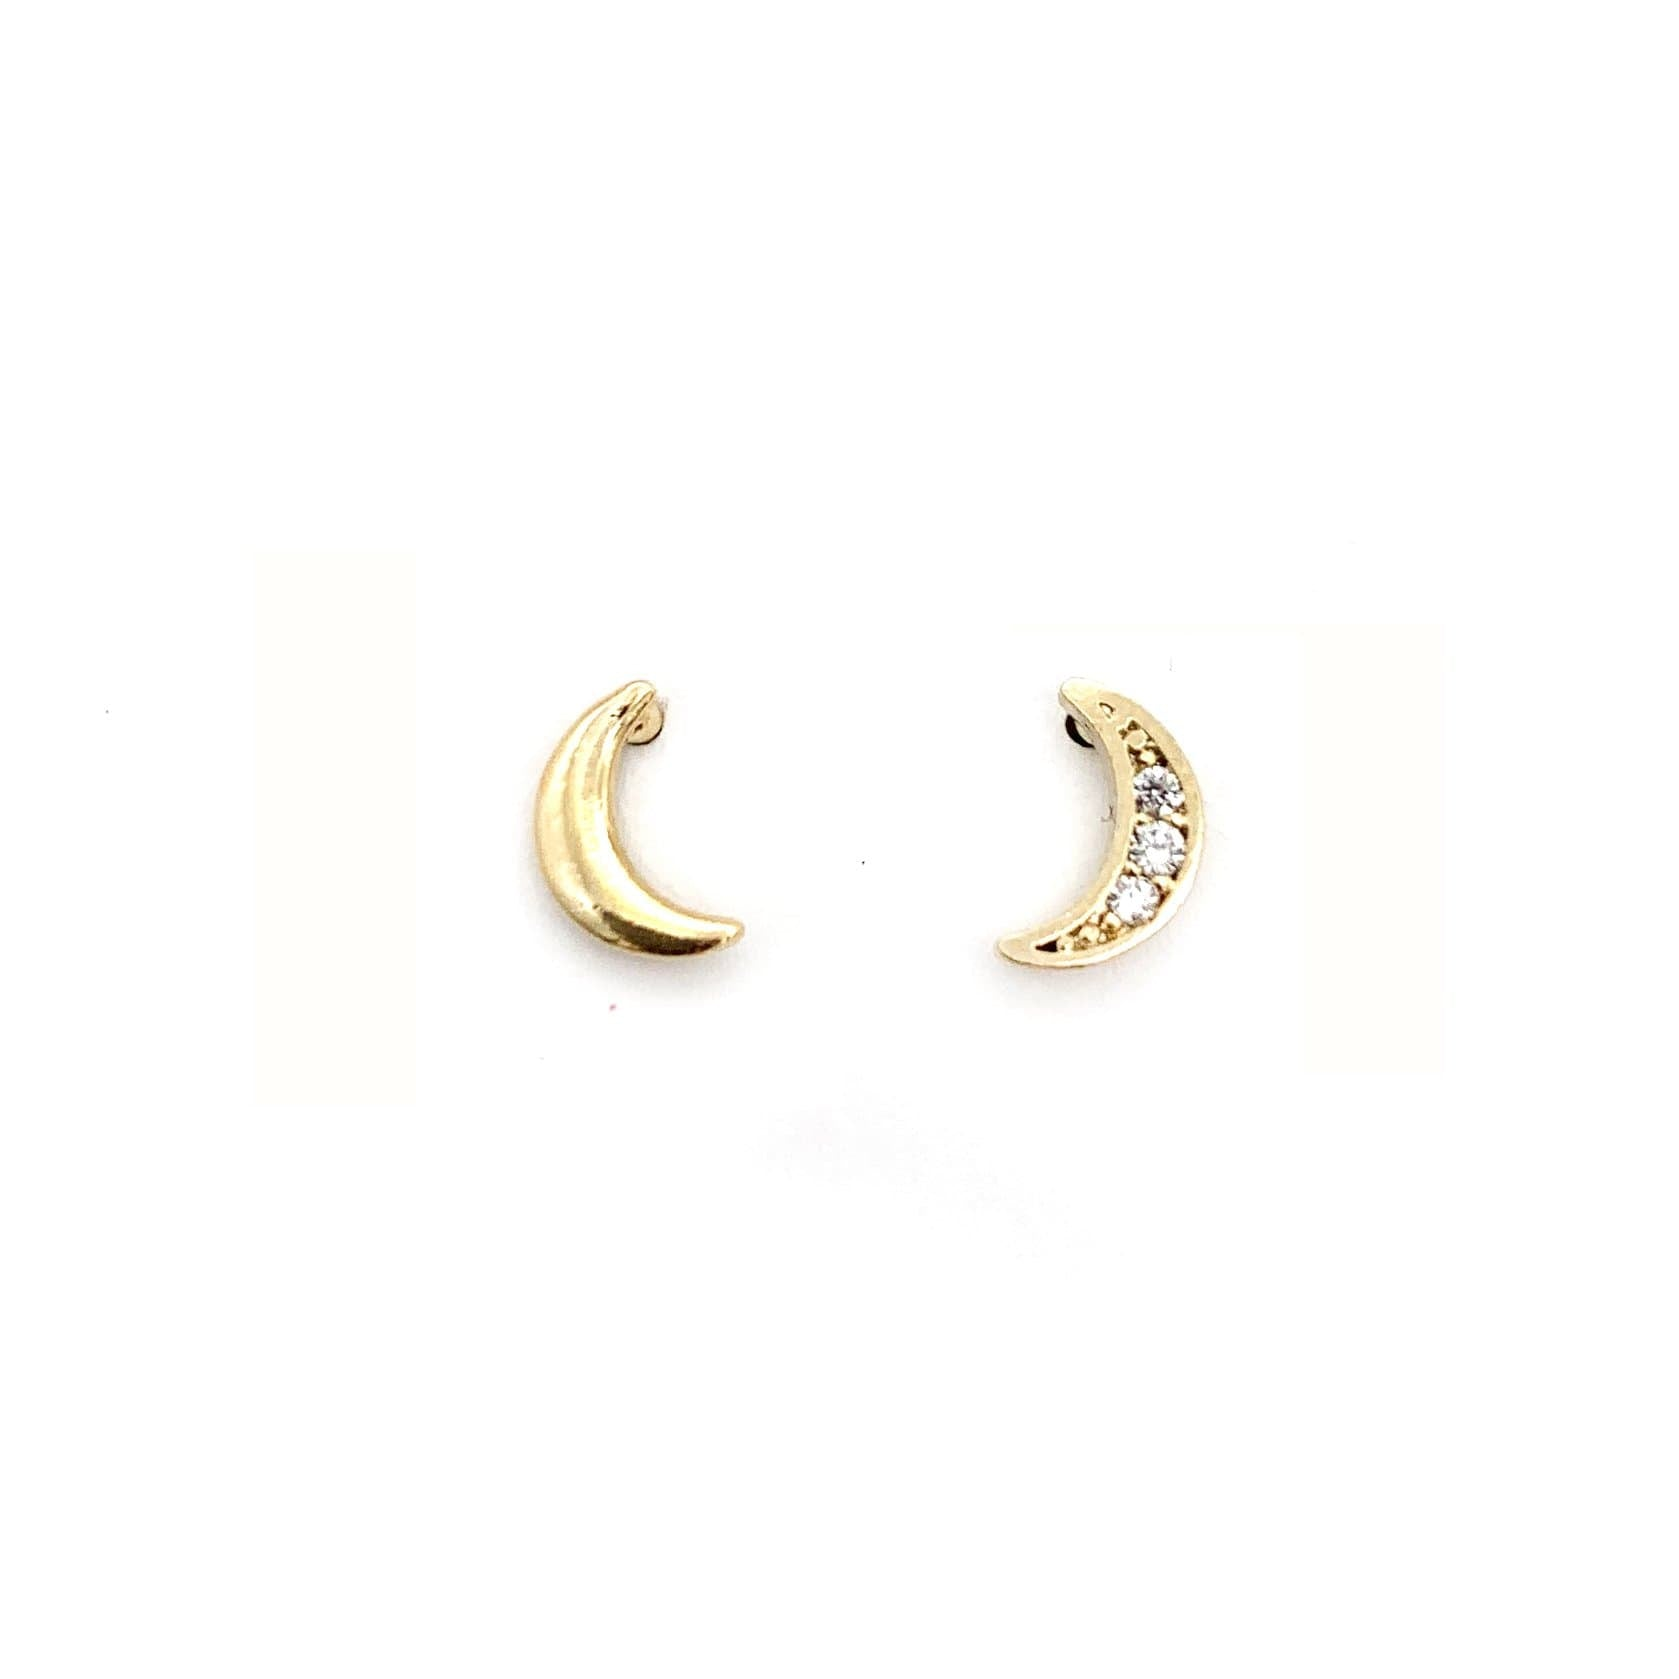 Luna Stud, Earrings, Adorn512, adorn512